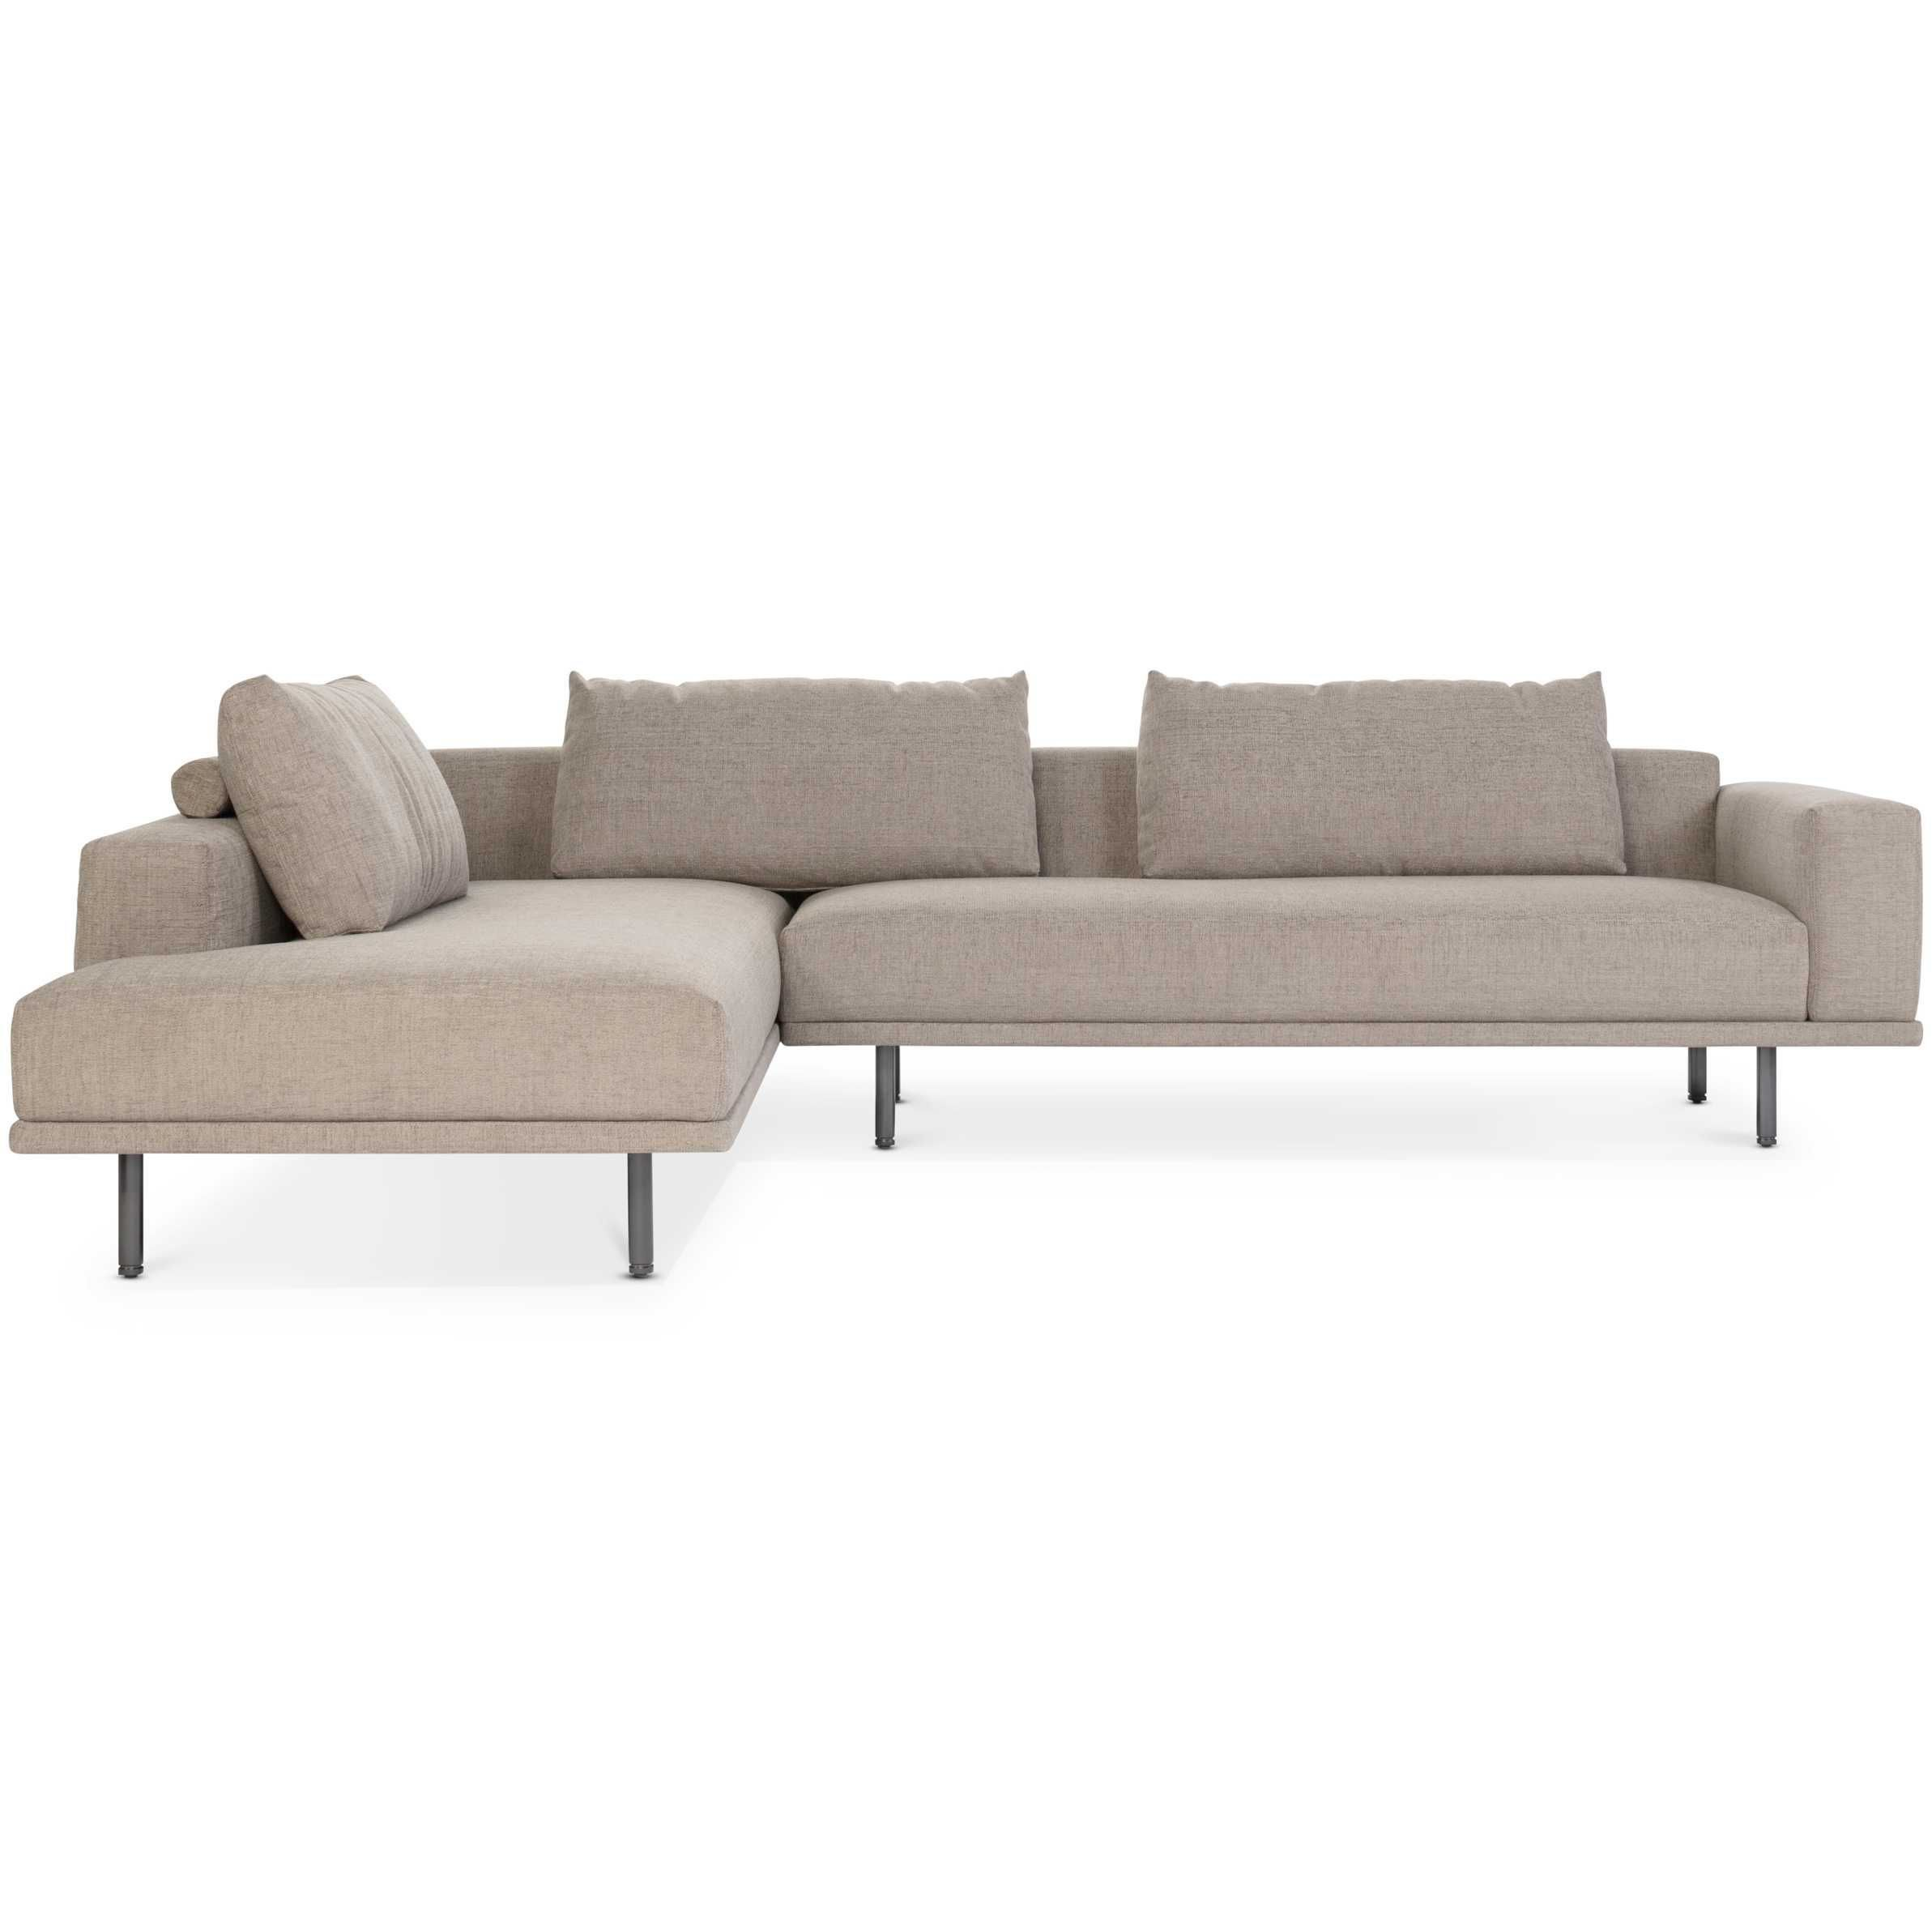 Hoekbank Met Chaise Longue.Design On Stock Cascade Hoekbank Met Open Chaise Longue